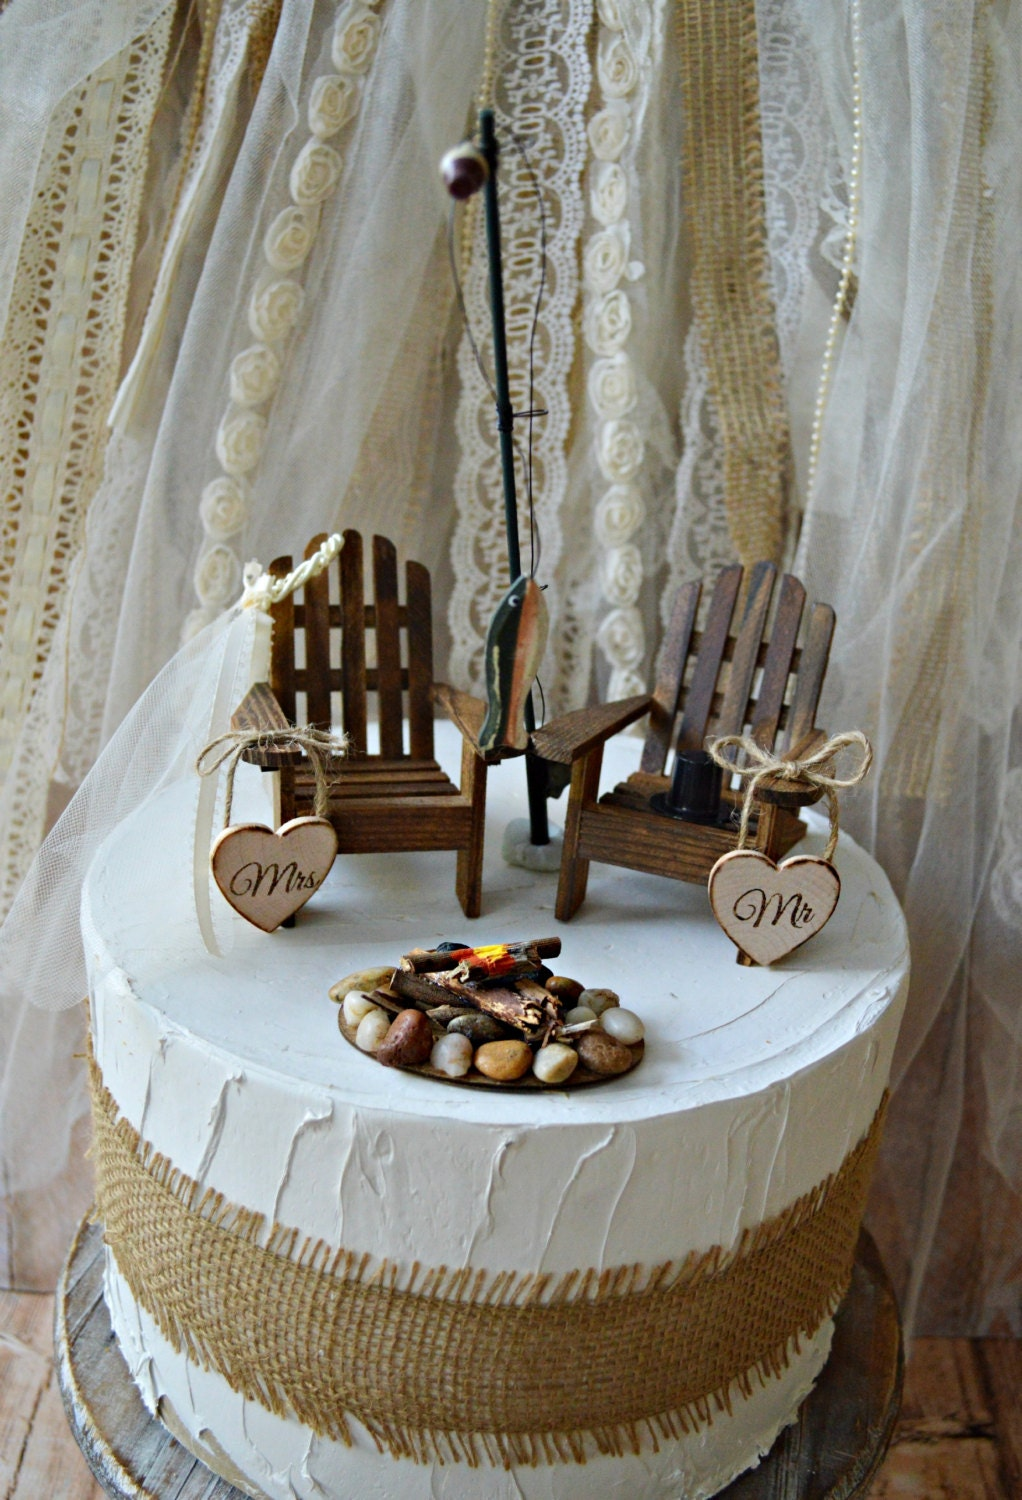 Hunting Camping Fishing Outdoors Wedding Cake Topper Fishing